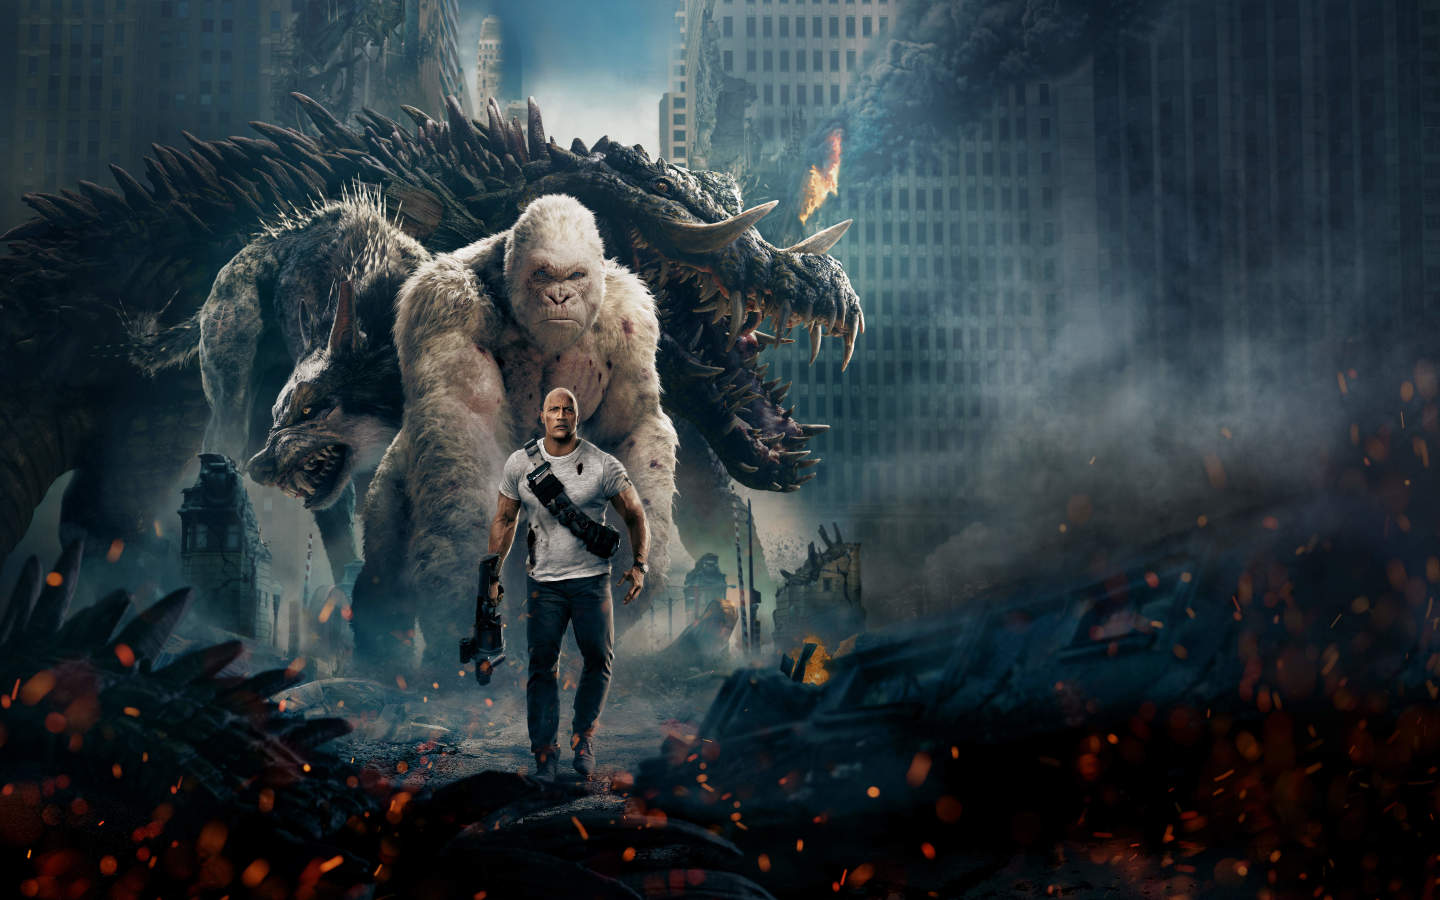 Hd Wallpapers For Samsung Galaxy S6 Edge Wallpapers Part 2: Rampage 2018 Official Poster, HD 8K Wallpaper